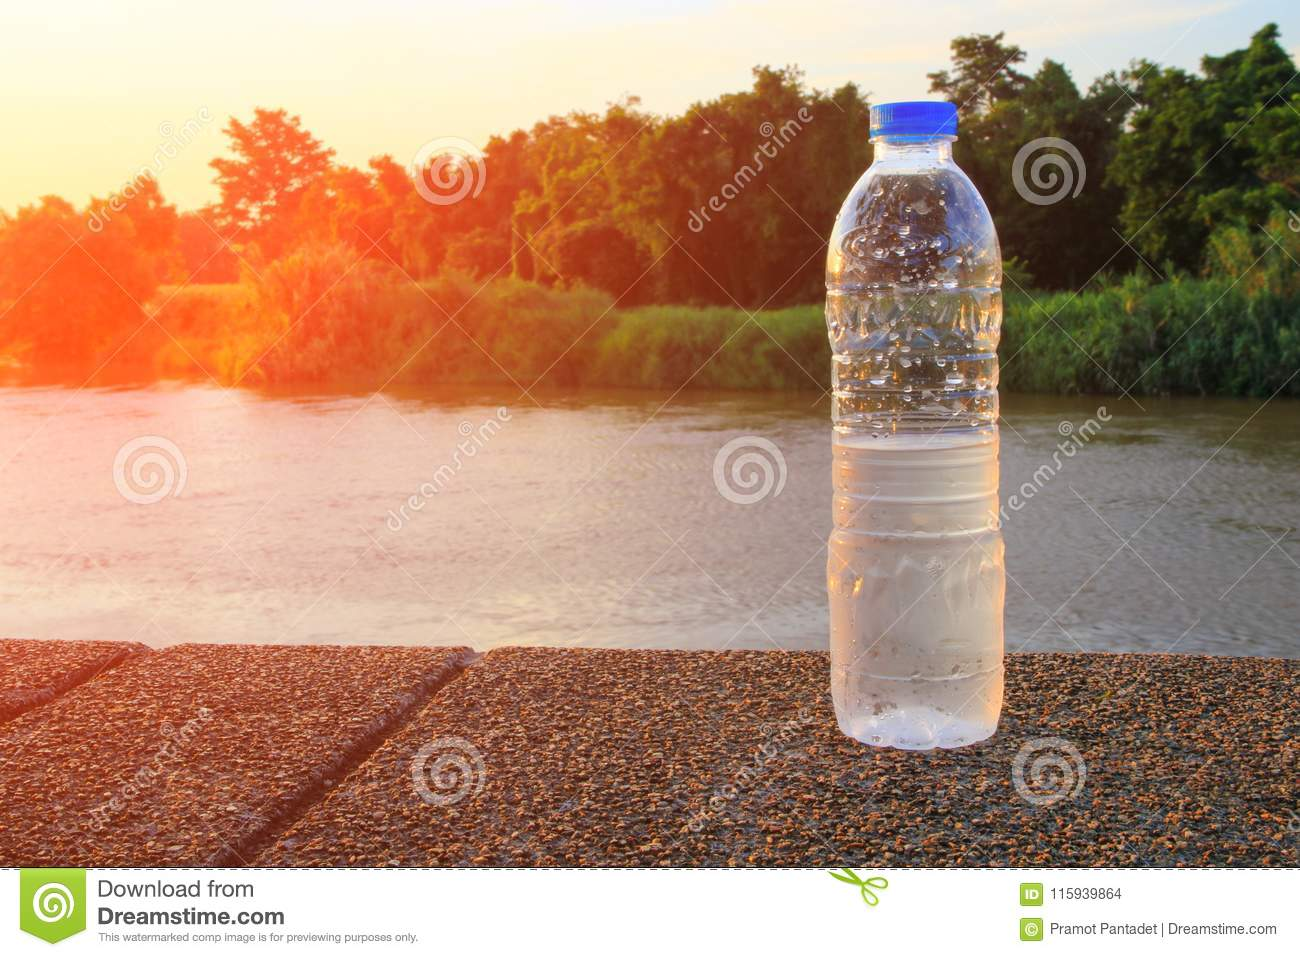 Plastic water bottle on the stone floor in a public park at sunset, sunrise time